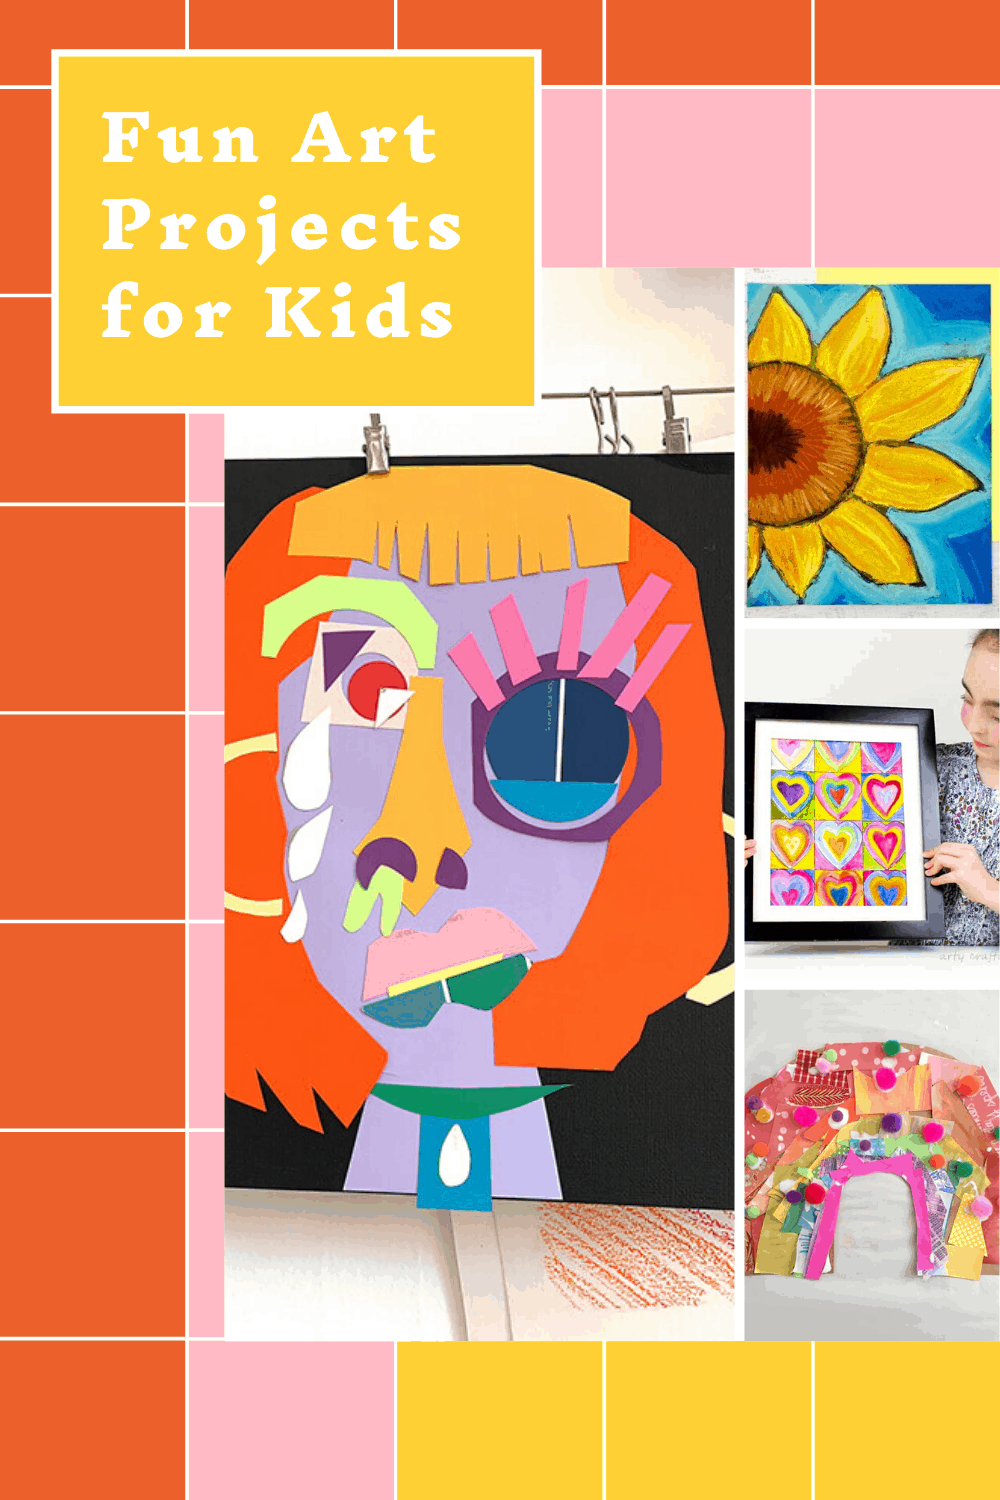 How fun are these art projects for kids! Inspired by Monet and Picasso with plenty of painting, collage and drawing fun for kids of all ages to enjoy!